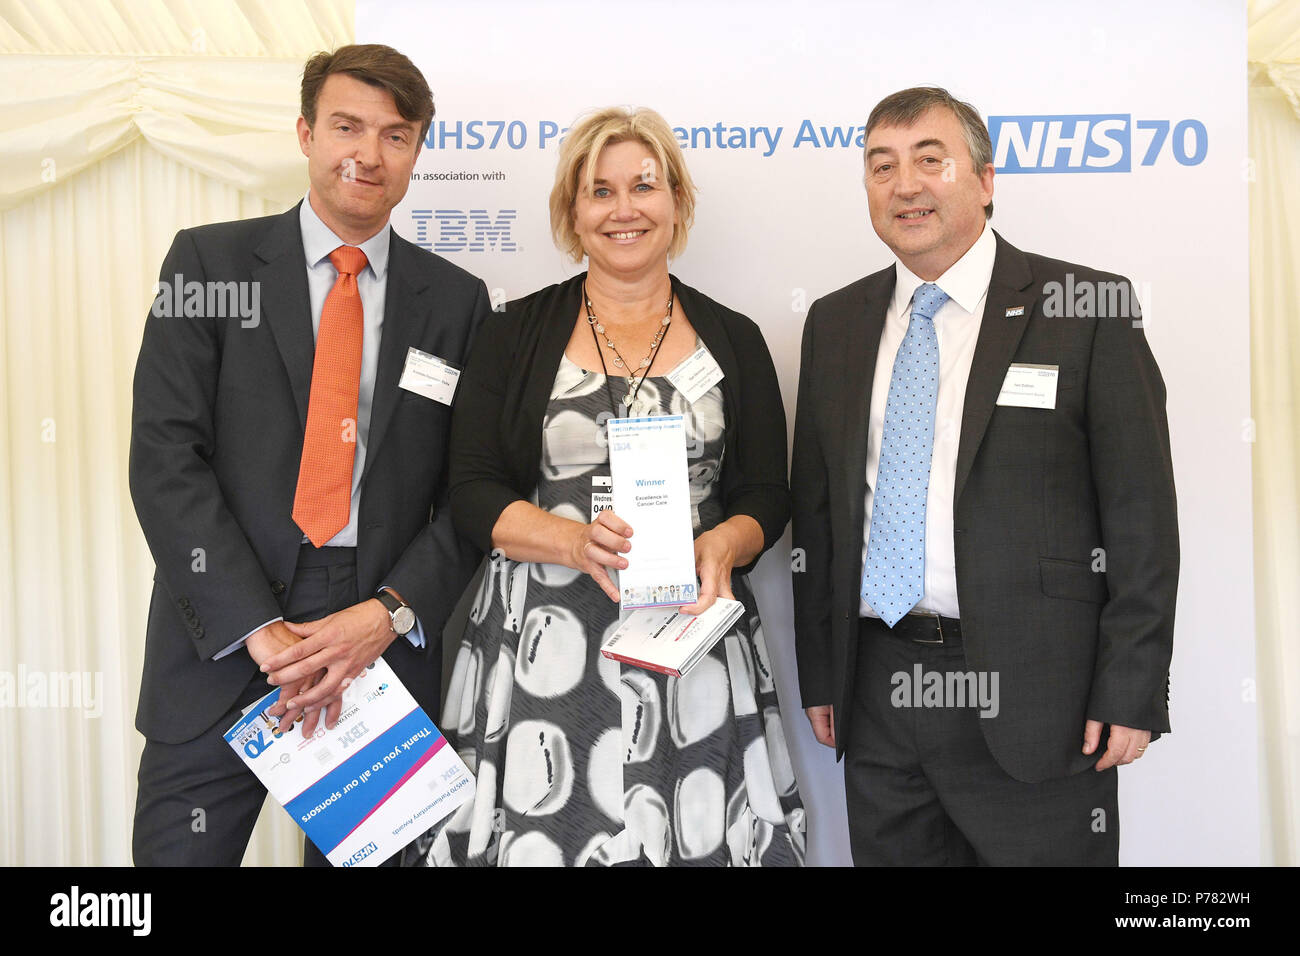 Sian Dennison receives her Excellence in Cancer care Award from Andreas Haimbock-Tichy (left) and Ian Dalton (right) during the NHS70 parliamentary awards for the 70th anniversary of the NHS at the House of Commons in Westminster, London. - Stock Image